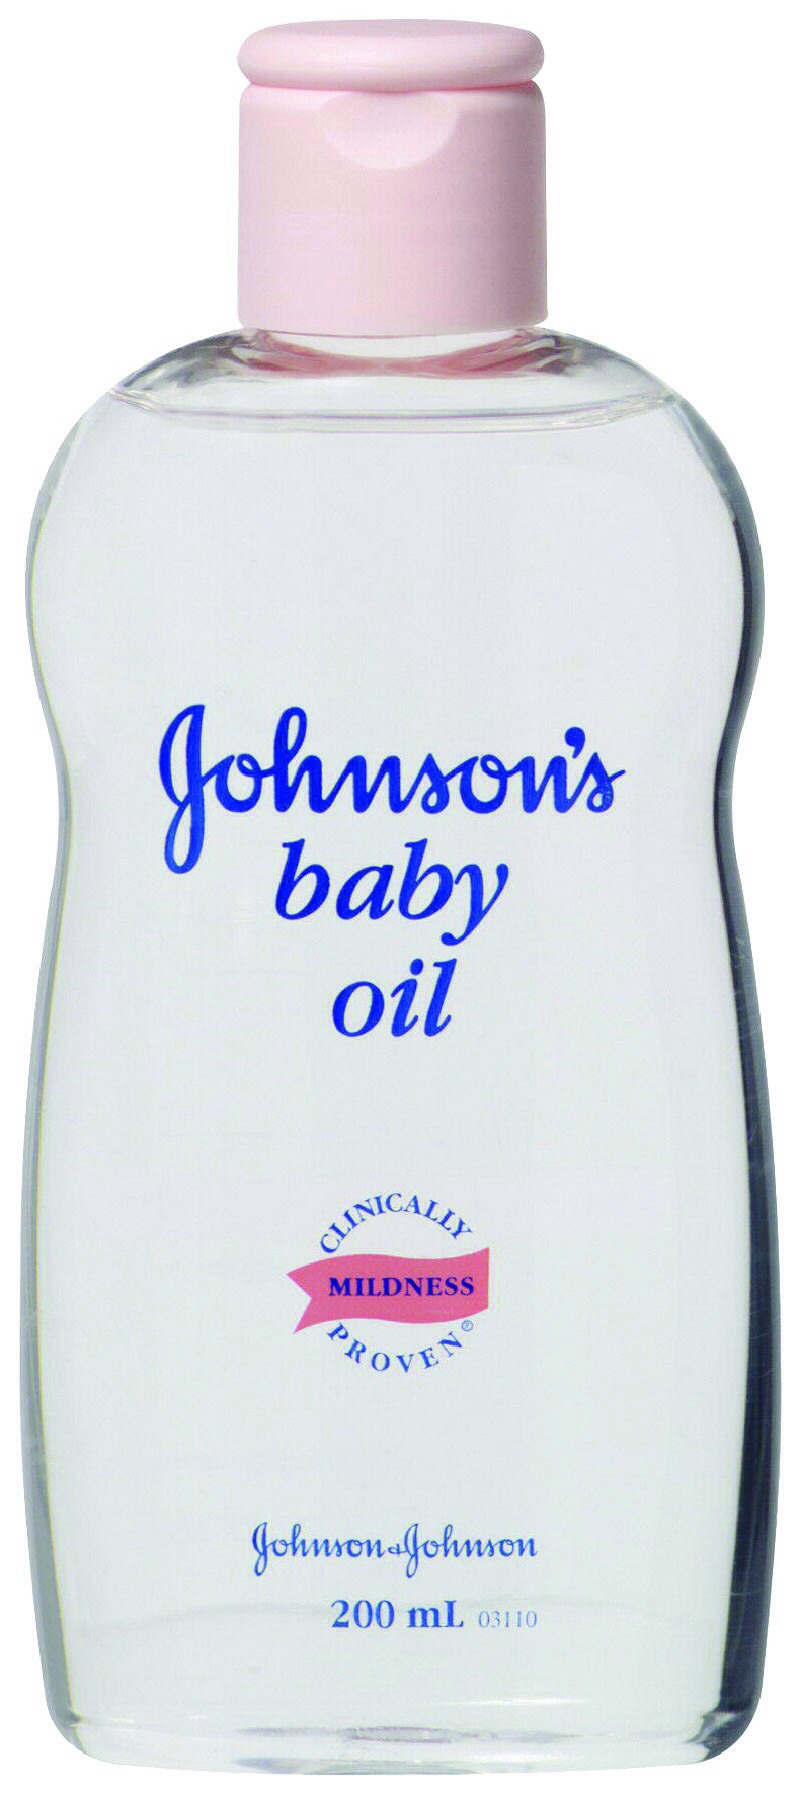 First thing you need. I actually got a travel sized Johnson's baby oil.